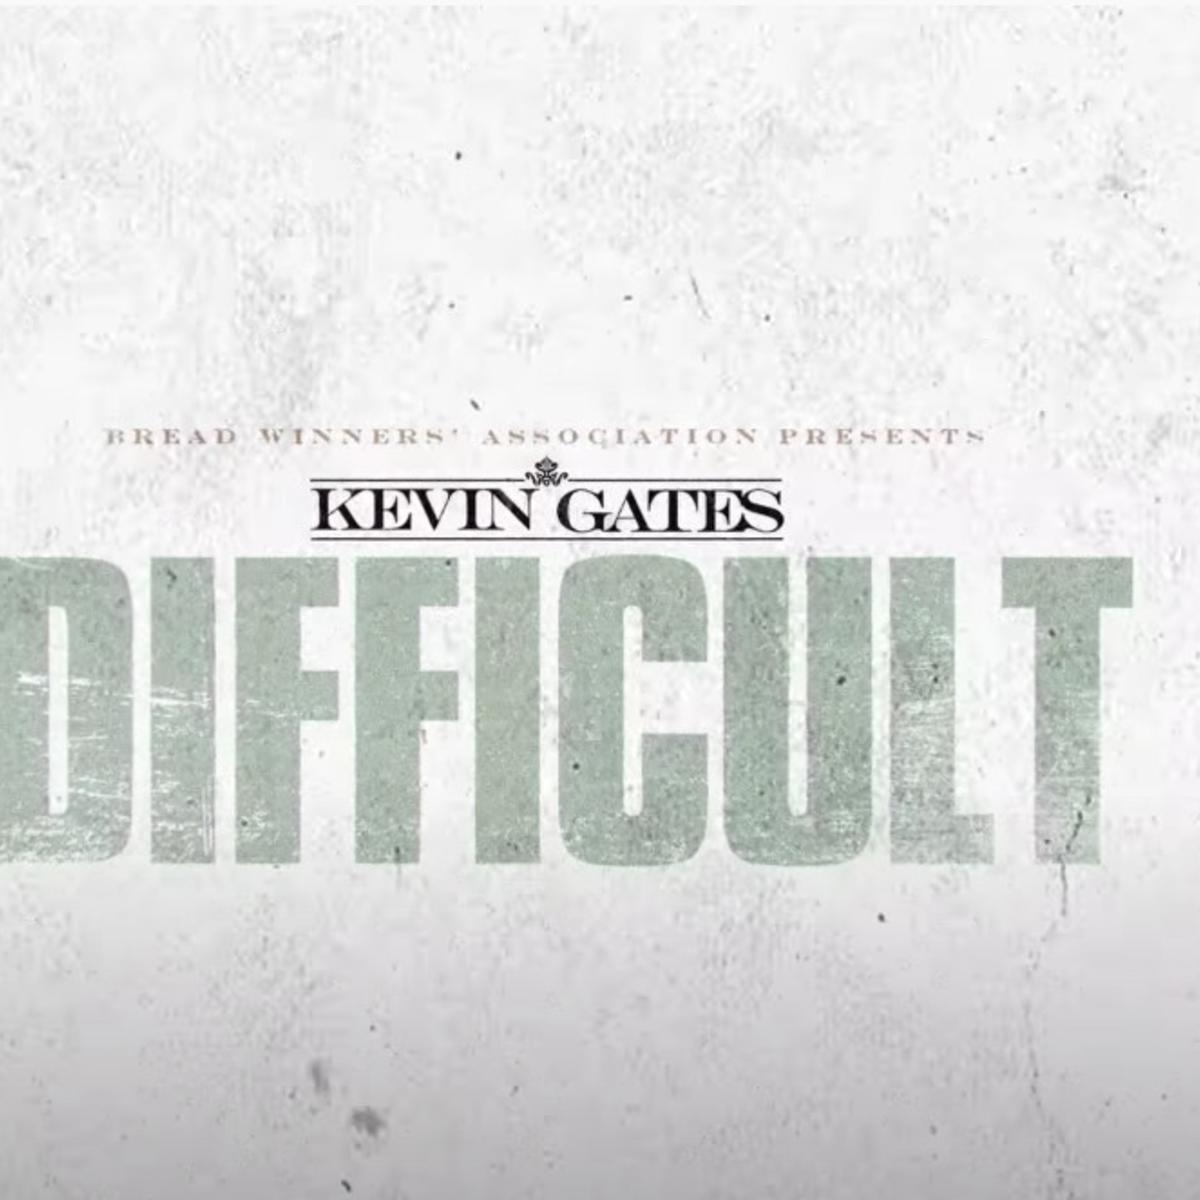 Kevin Gates - Difficult